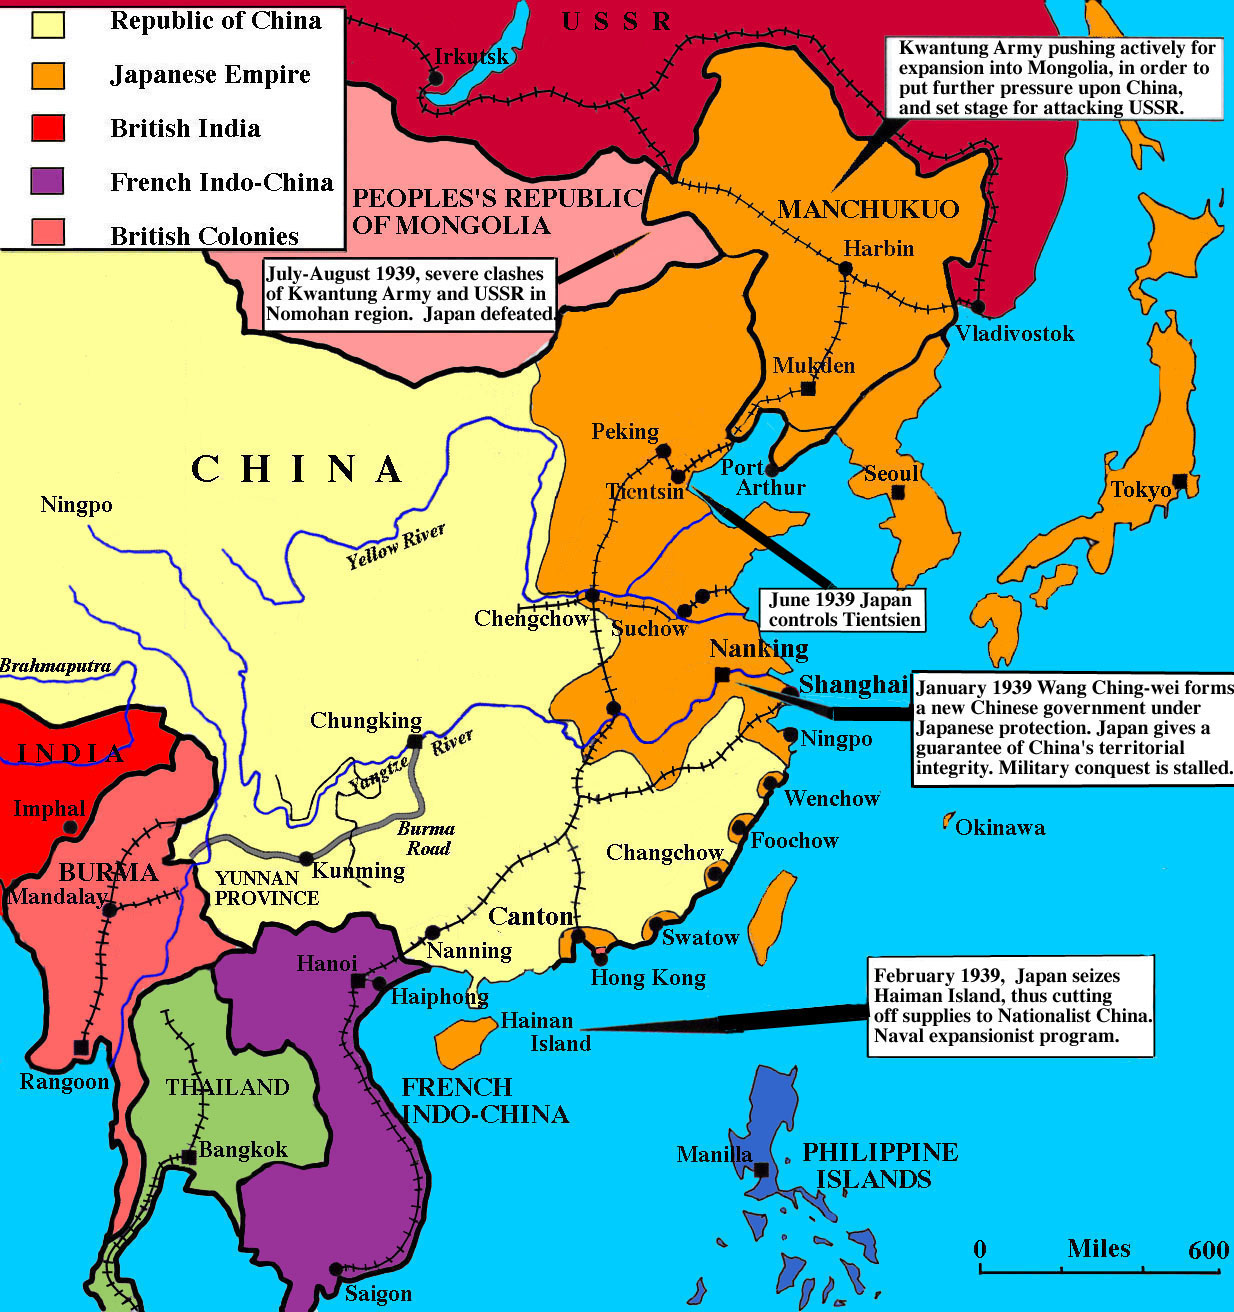 A map of China under Japanese domination at the beginning of World War II